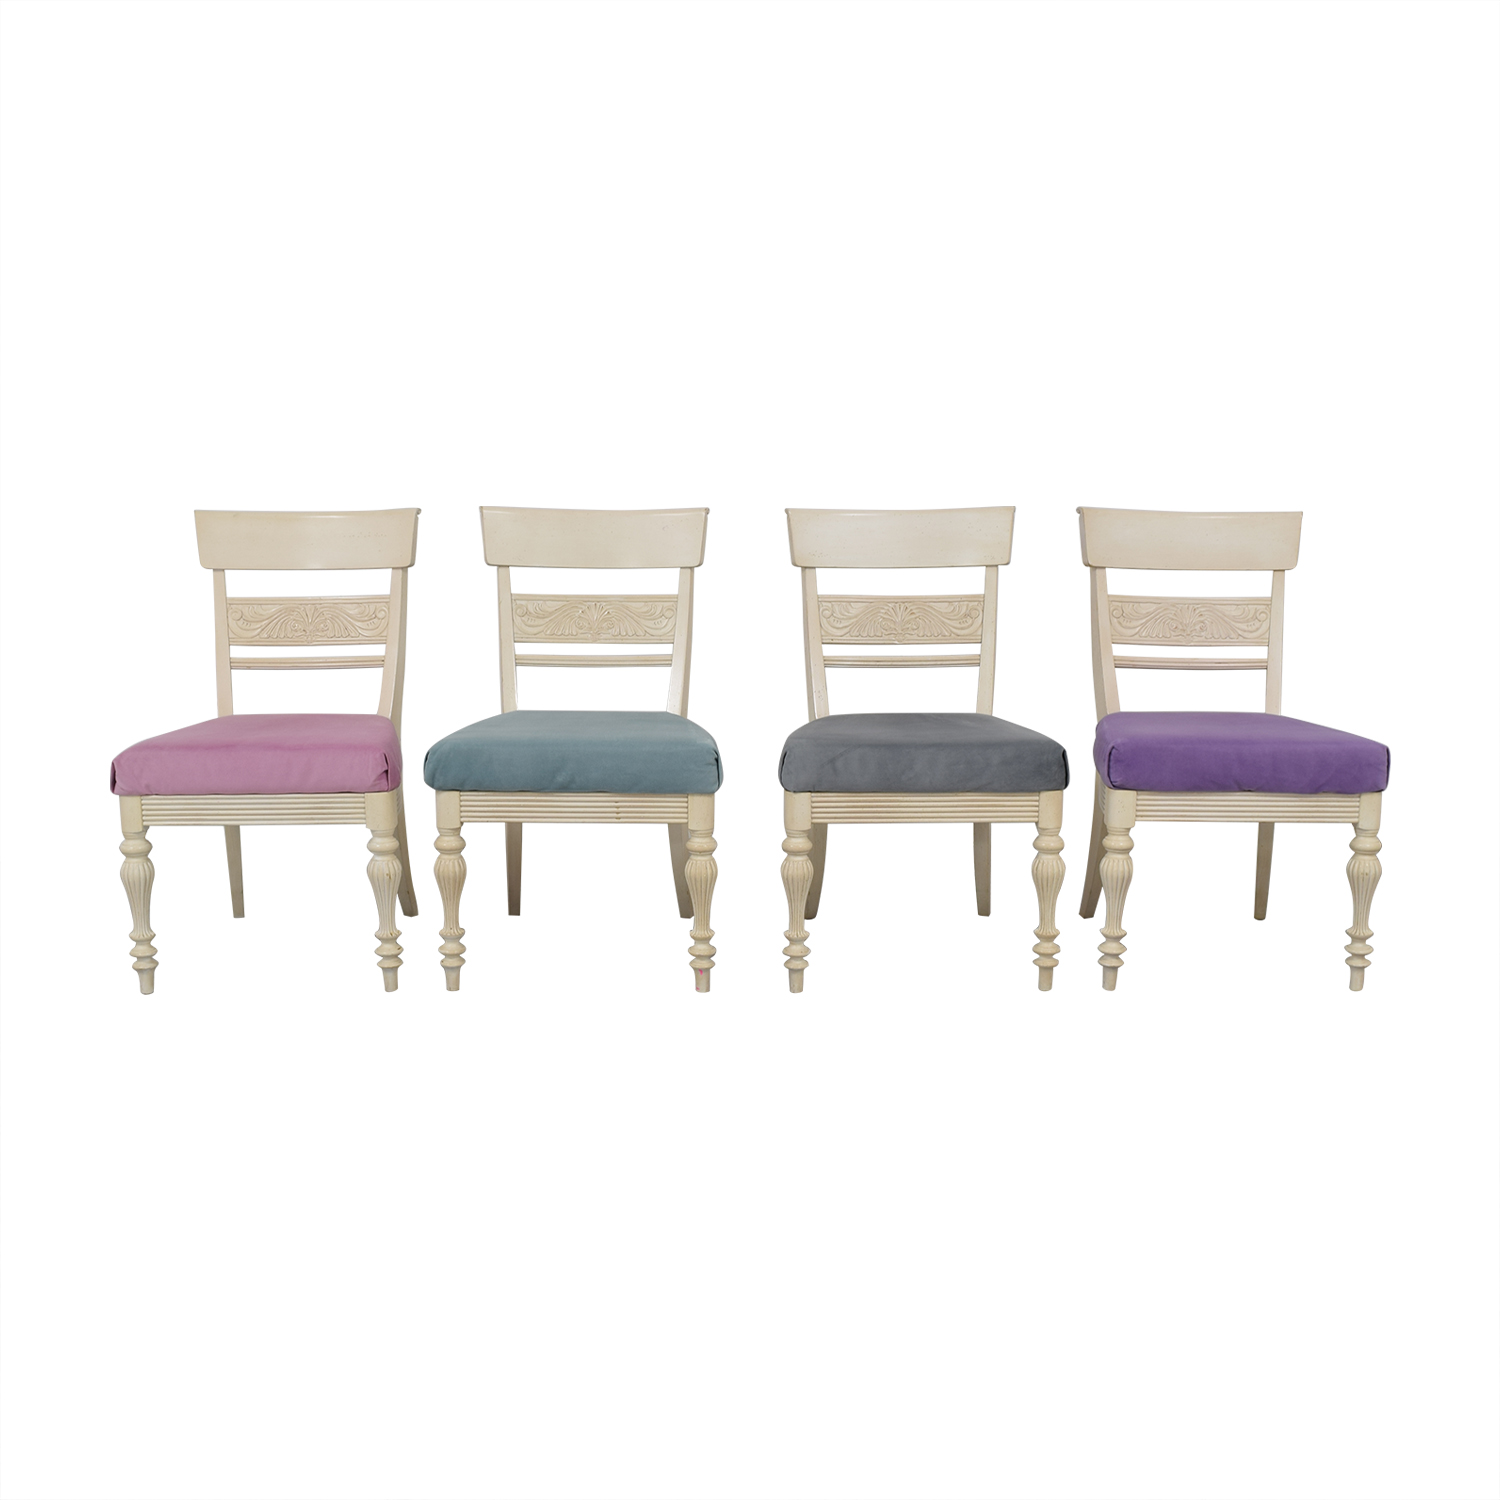 buy Ethan Allen Mackenzie Dining Side Chairs Ethan Allen Dining Chairs